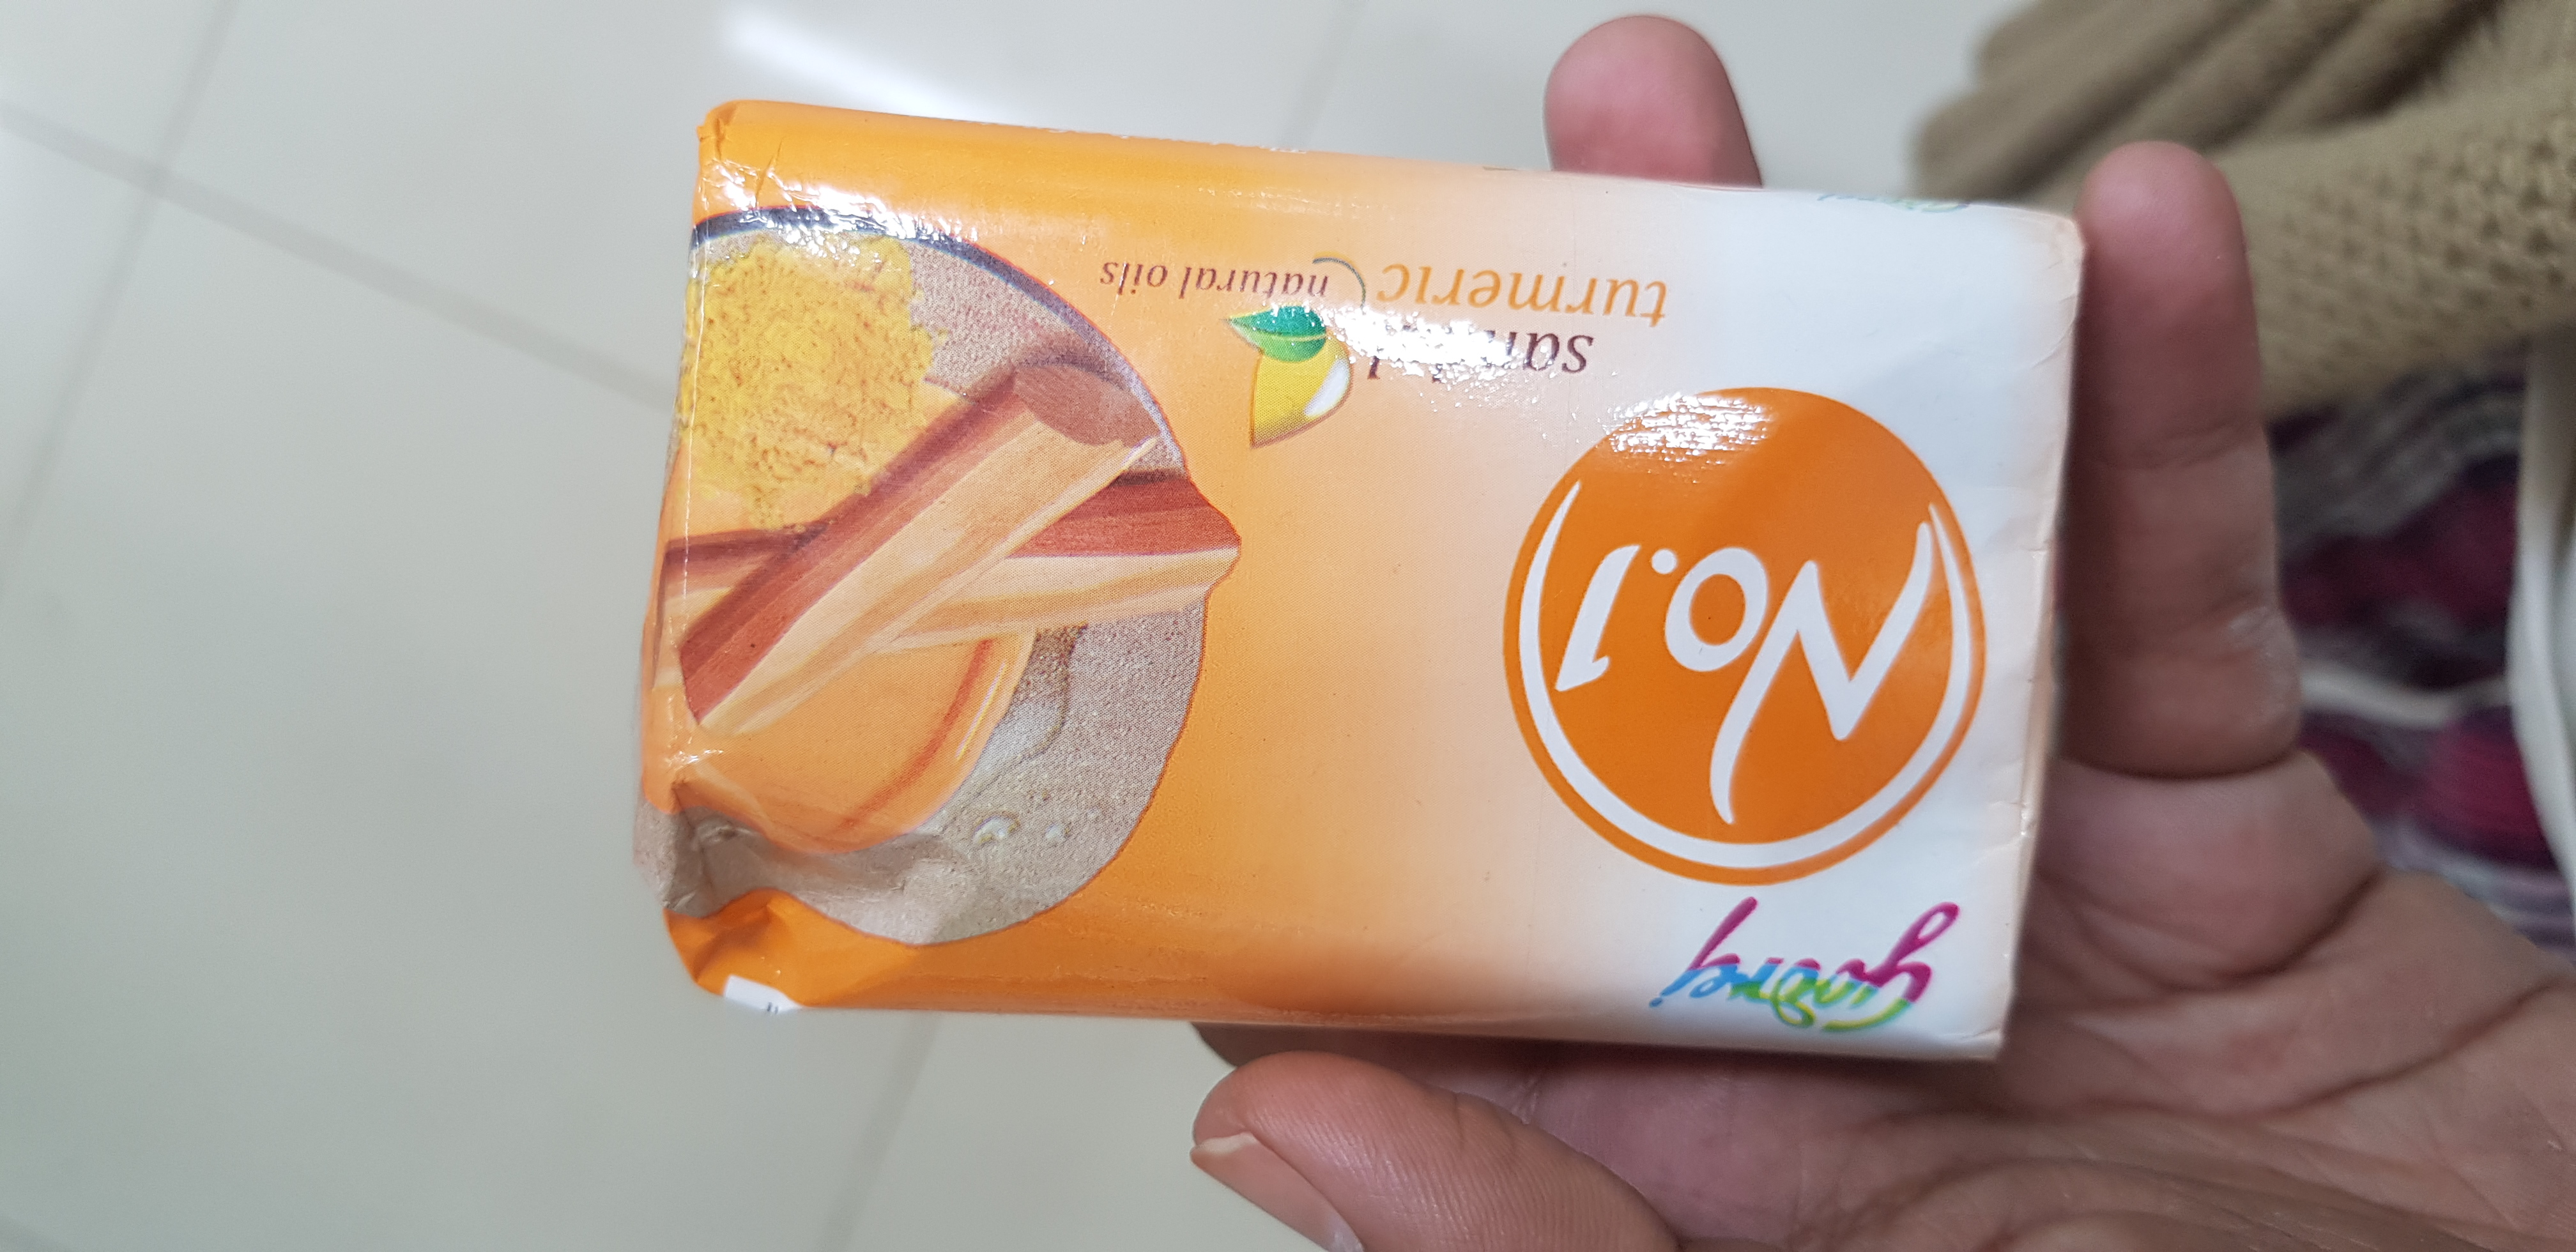 Godrej No 1 Sandal And Turmeric Soap-Turmeric soap-By avyuktha